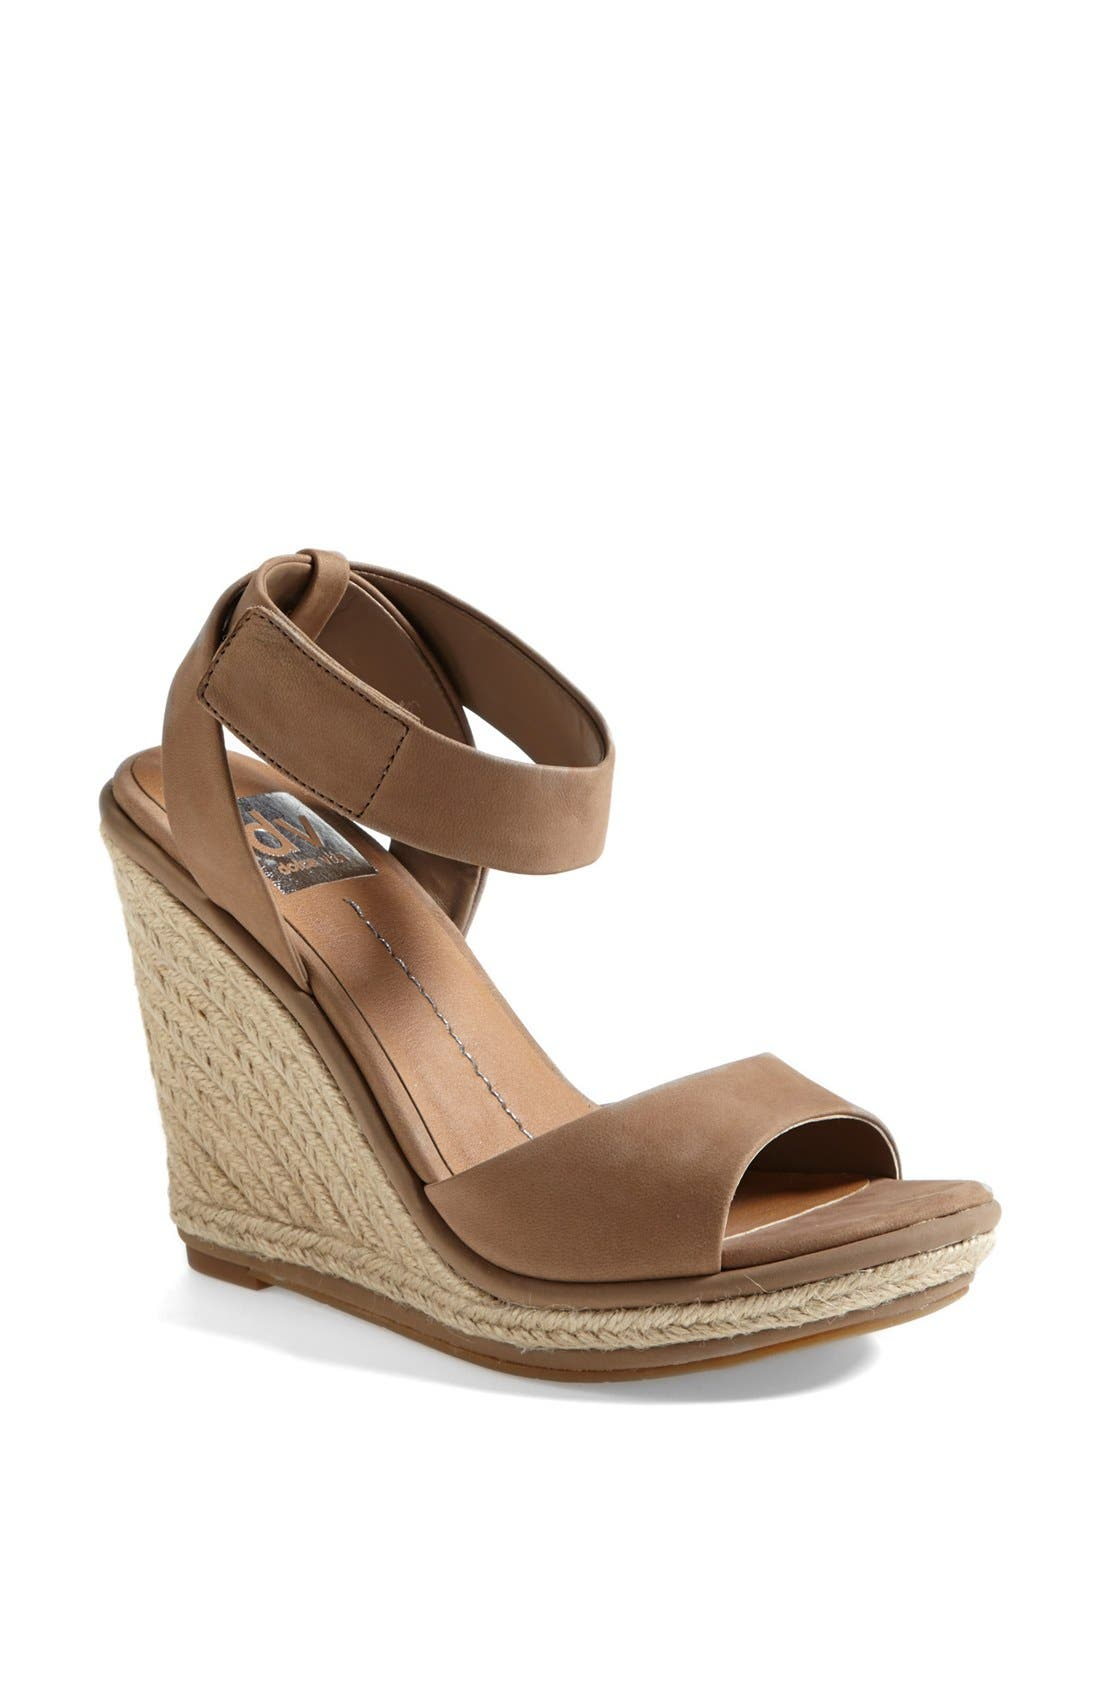 DV by Dolce Vita 'Tonya' Sandal,                         Main,                         color, Taupe